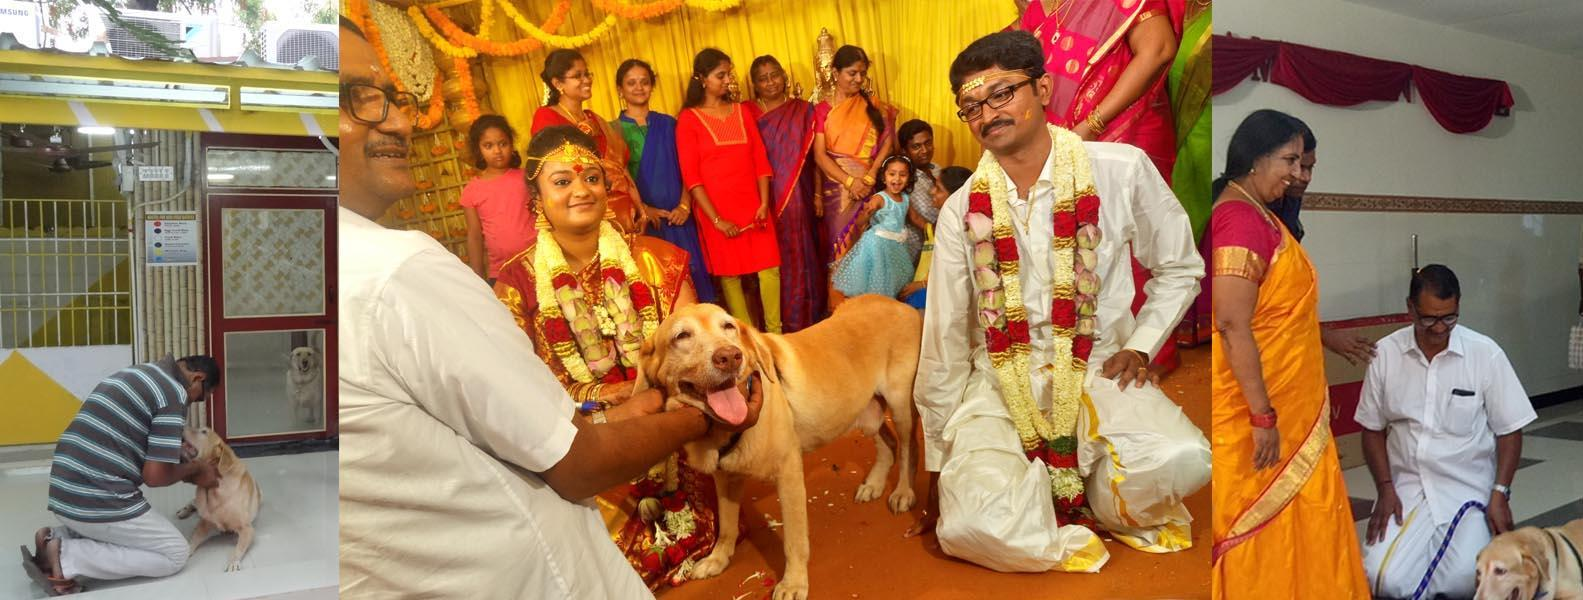 Hostel for dogs in chennai